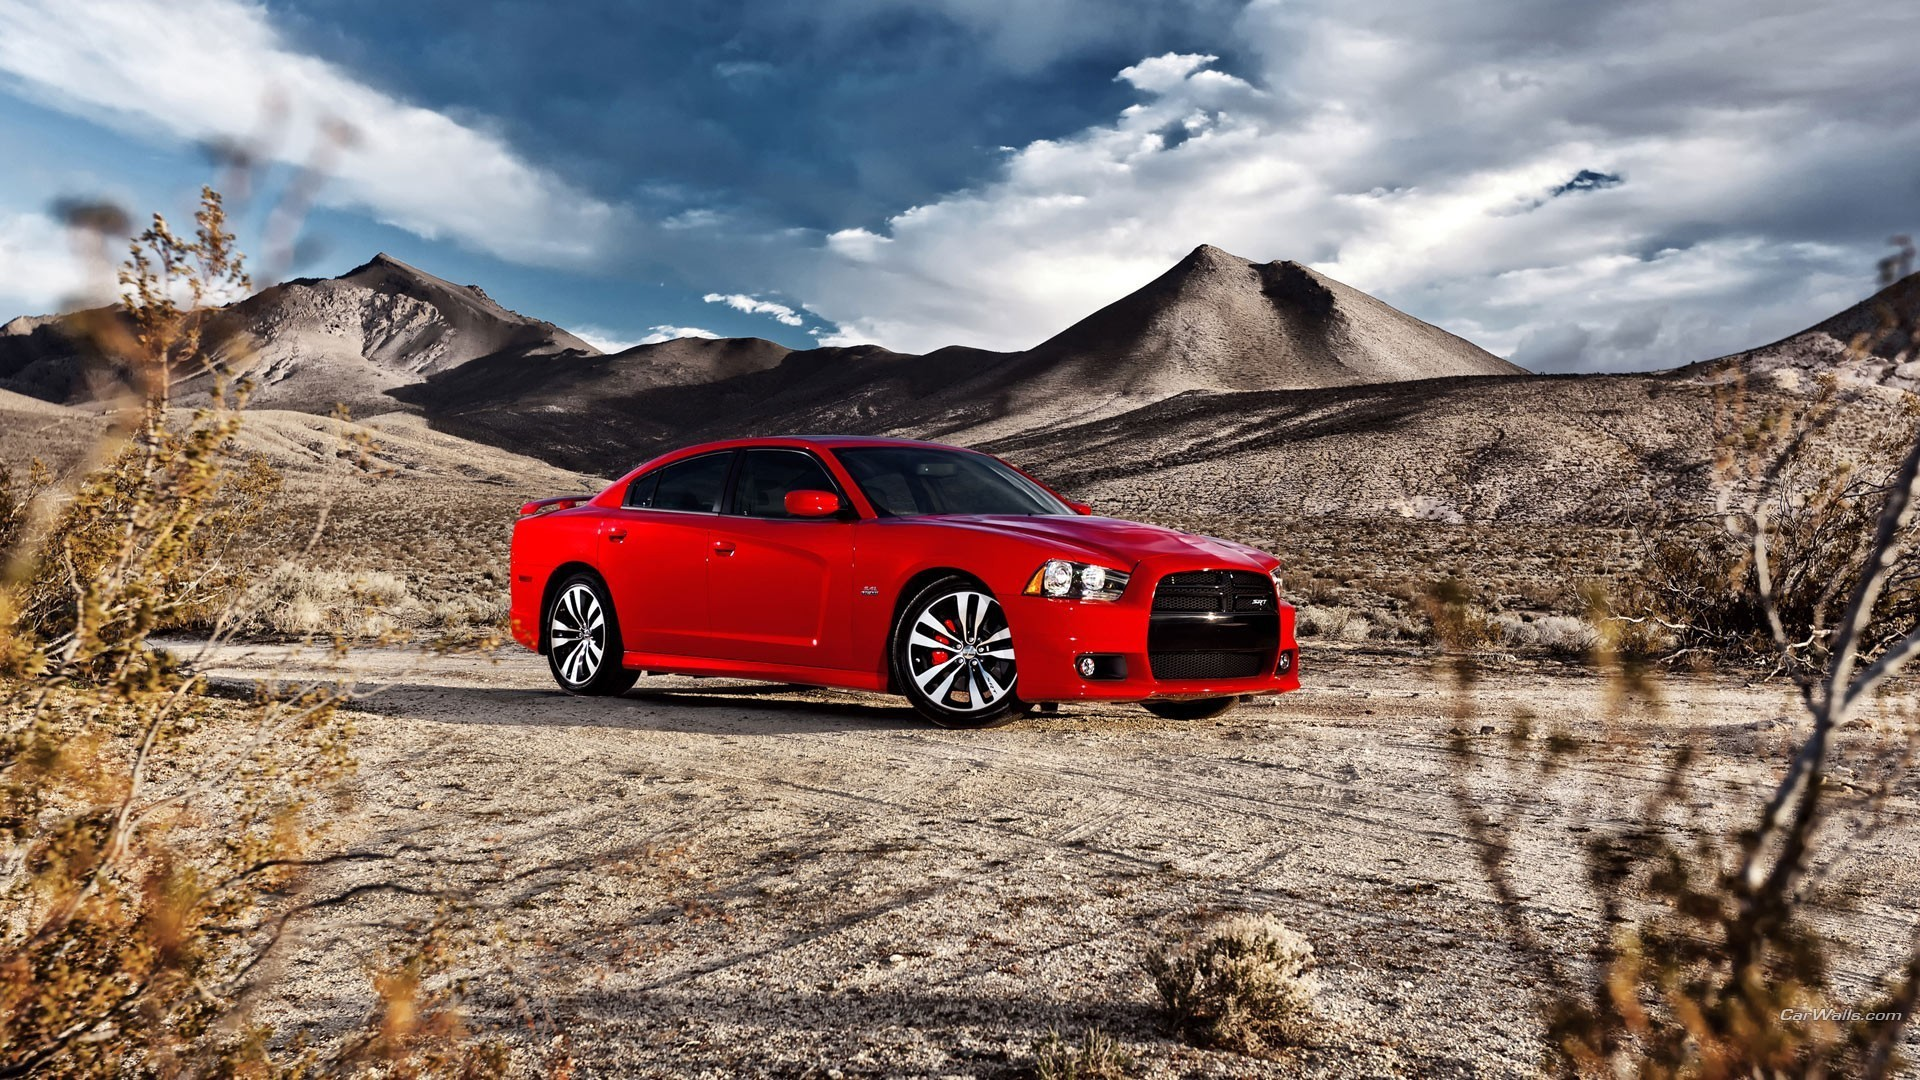 Charger-dodge-cars-red-1920x1080-dodge-cars-red-via-www-all-in-wallpaper-wpc9003426